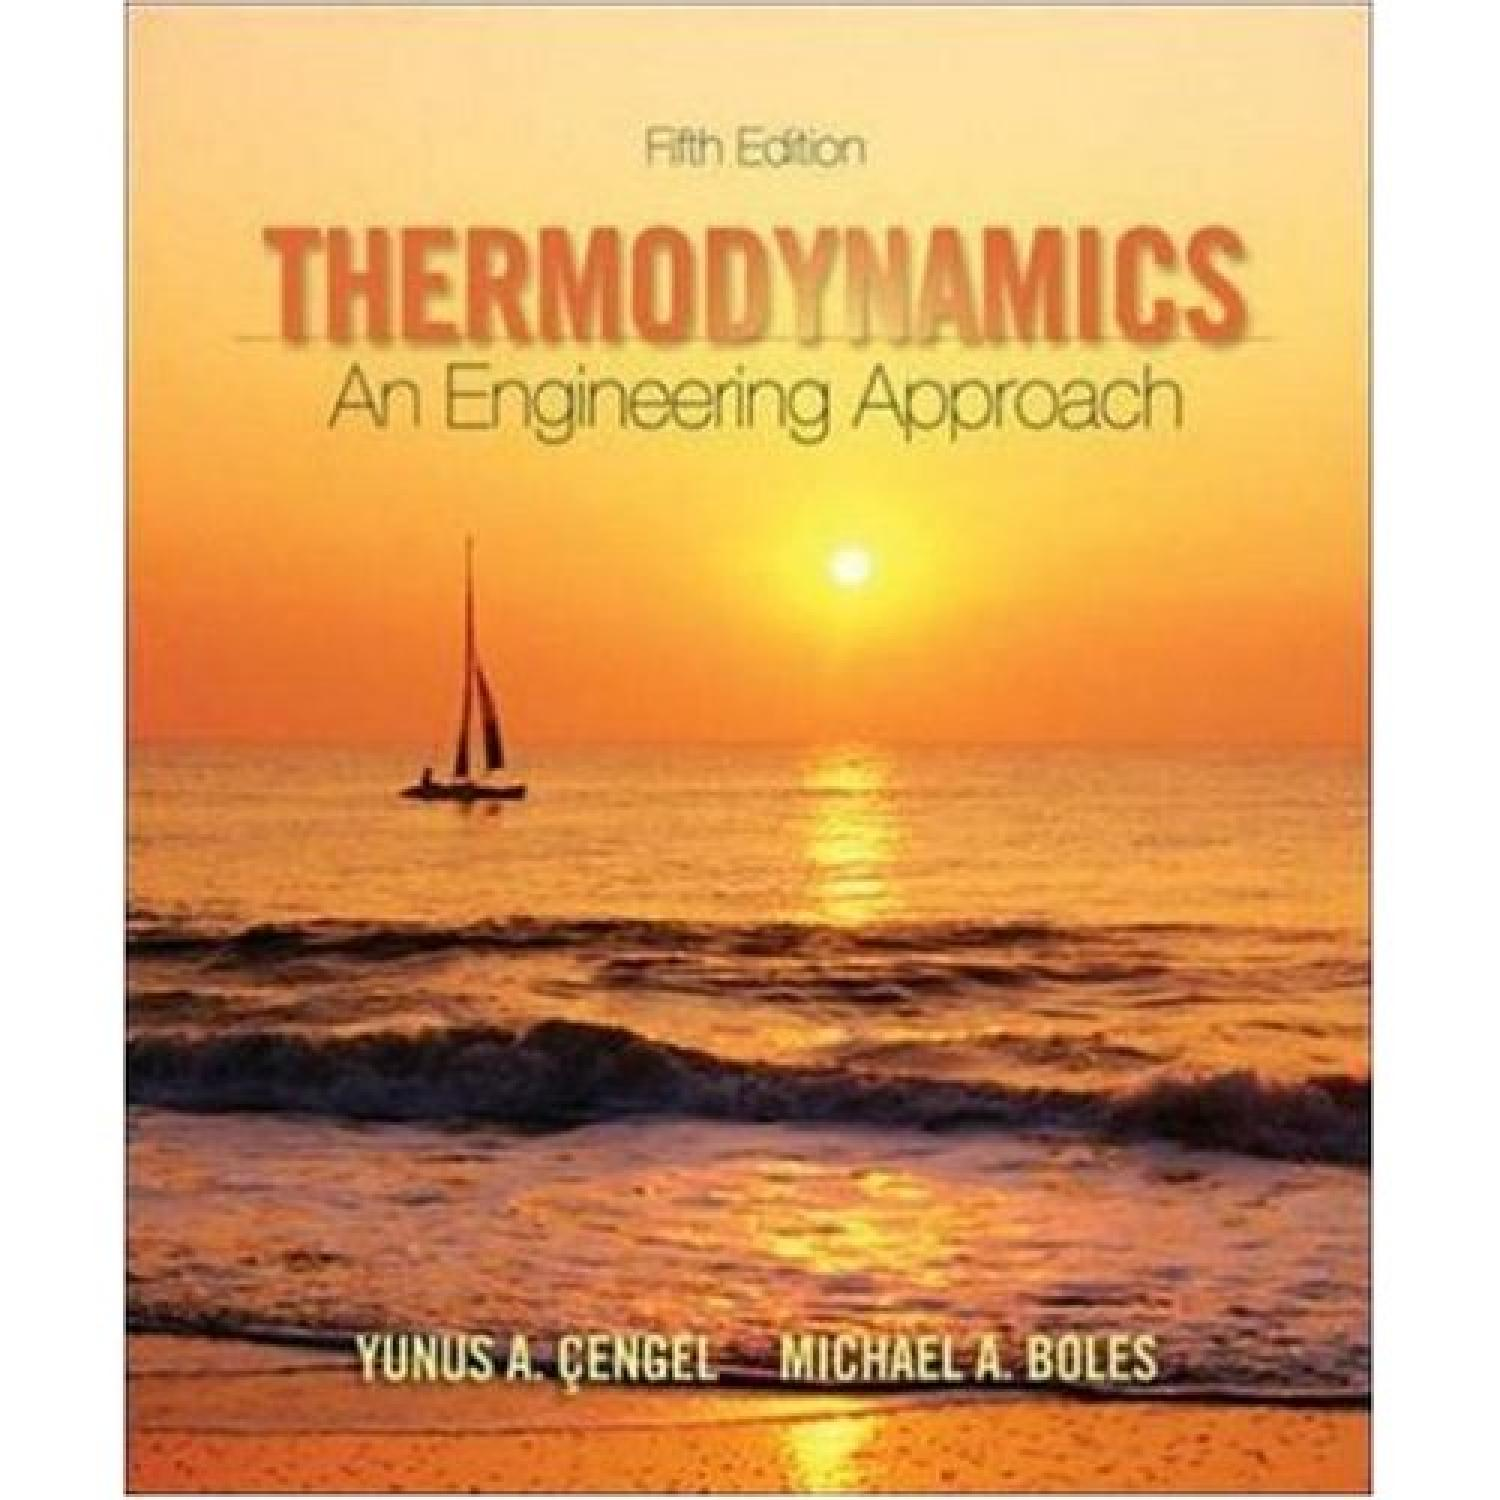 Thermodynamics: An Engineering Approach - 5th Edition - Part